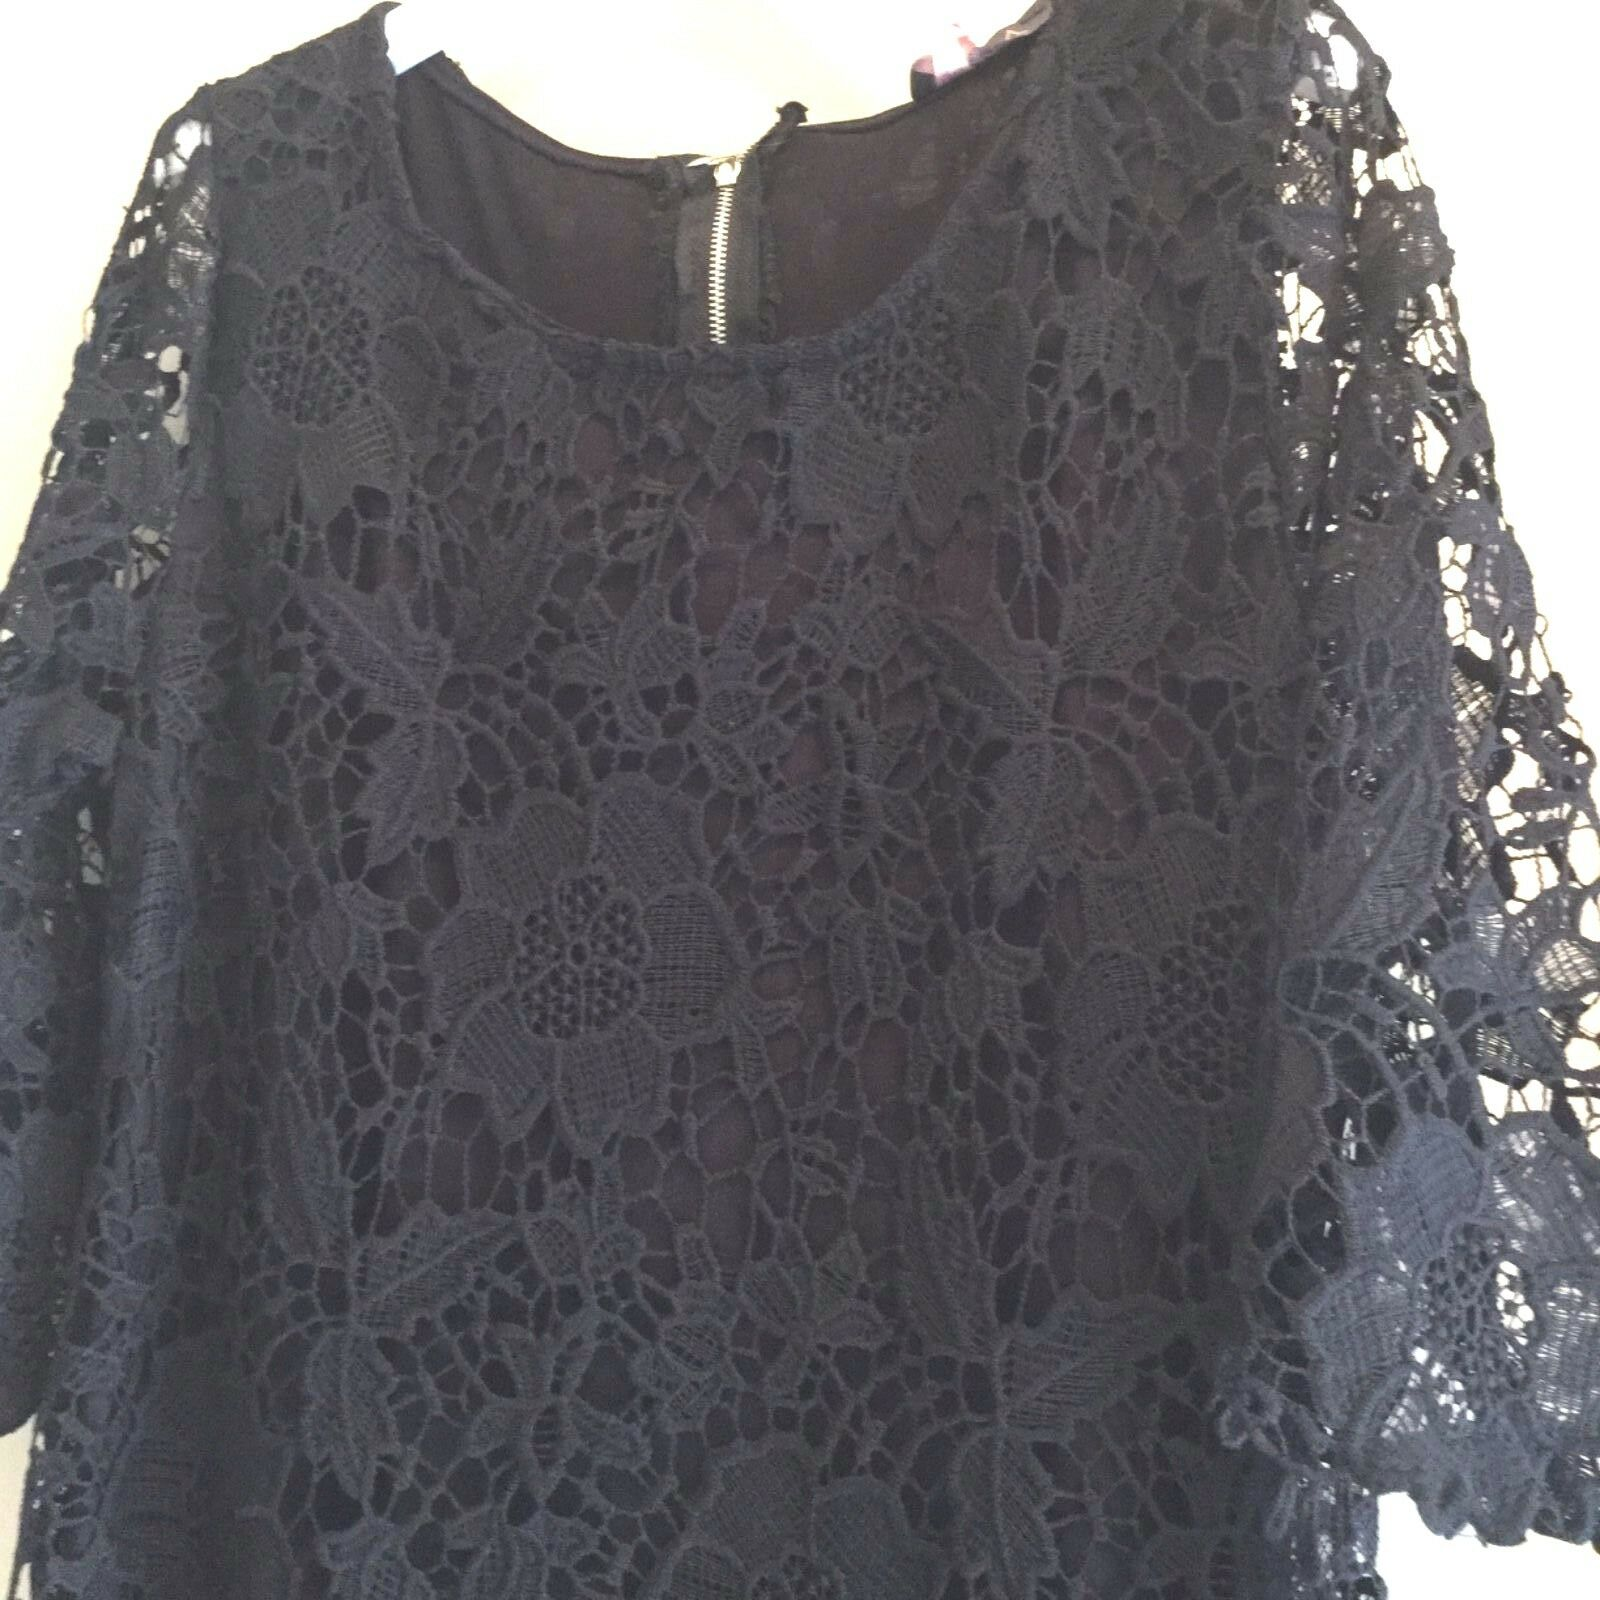 NWT Lola evening short cocktail dress black lace trumpet sleeve Large ITALY